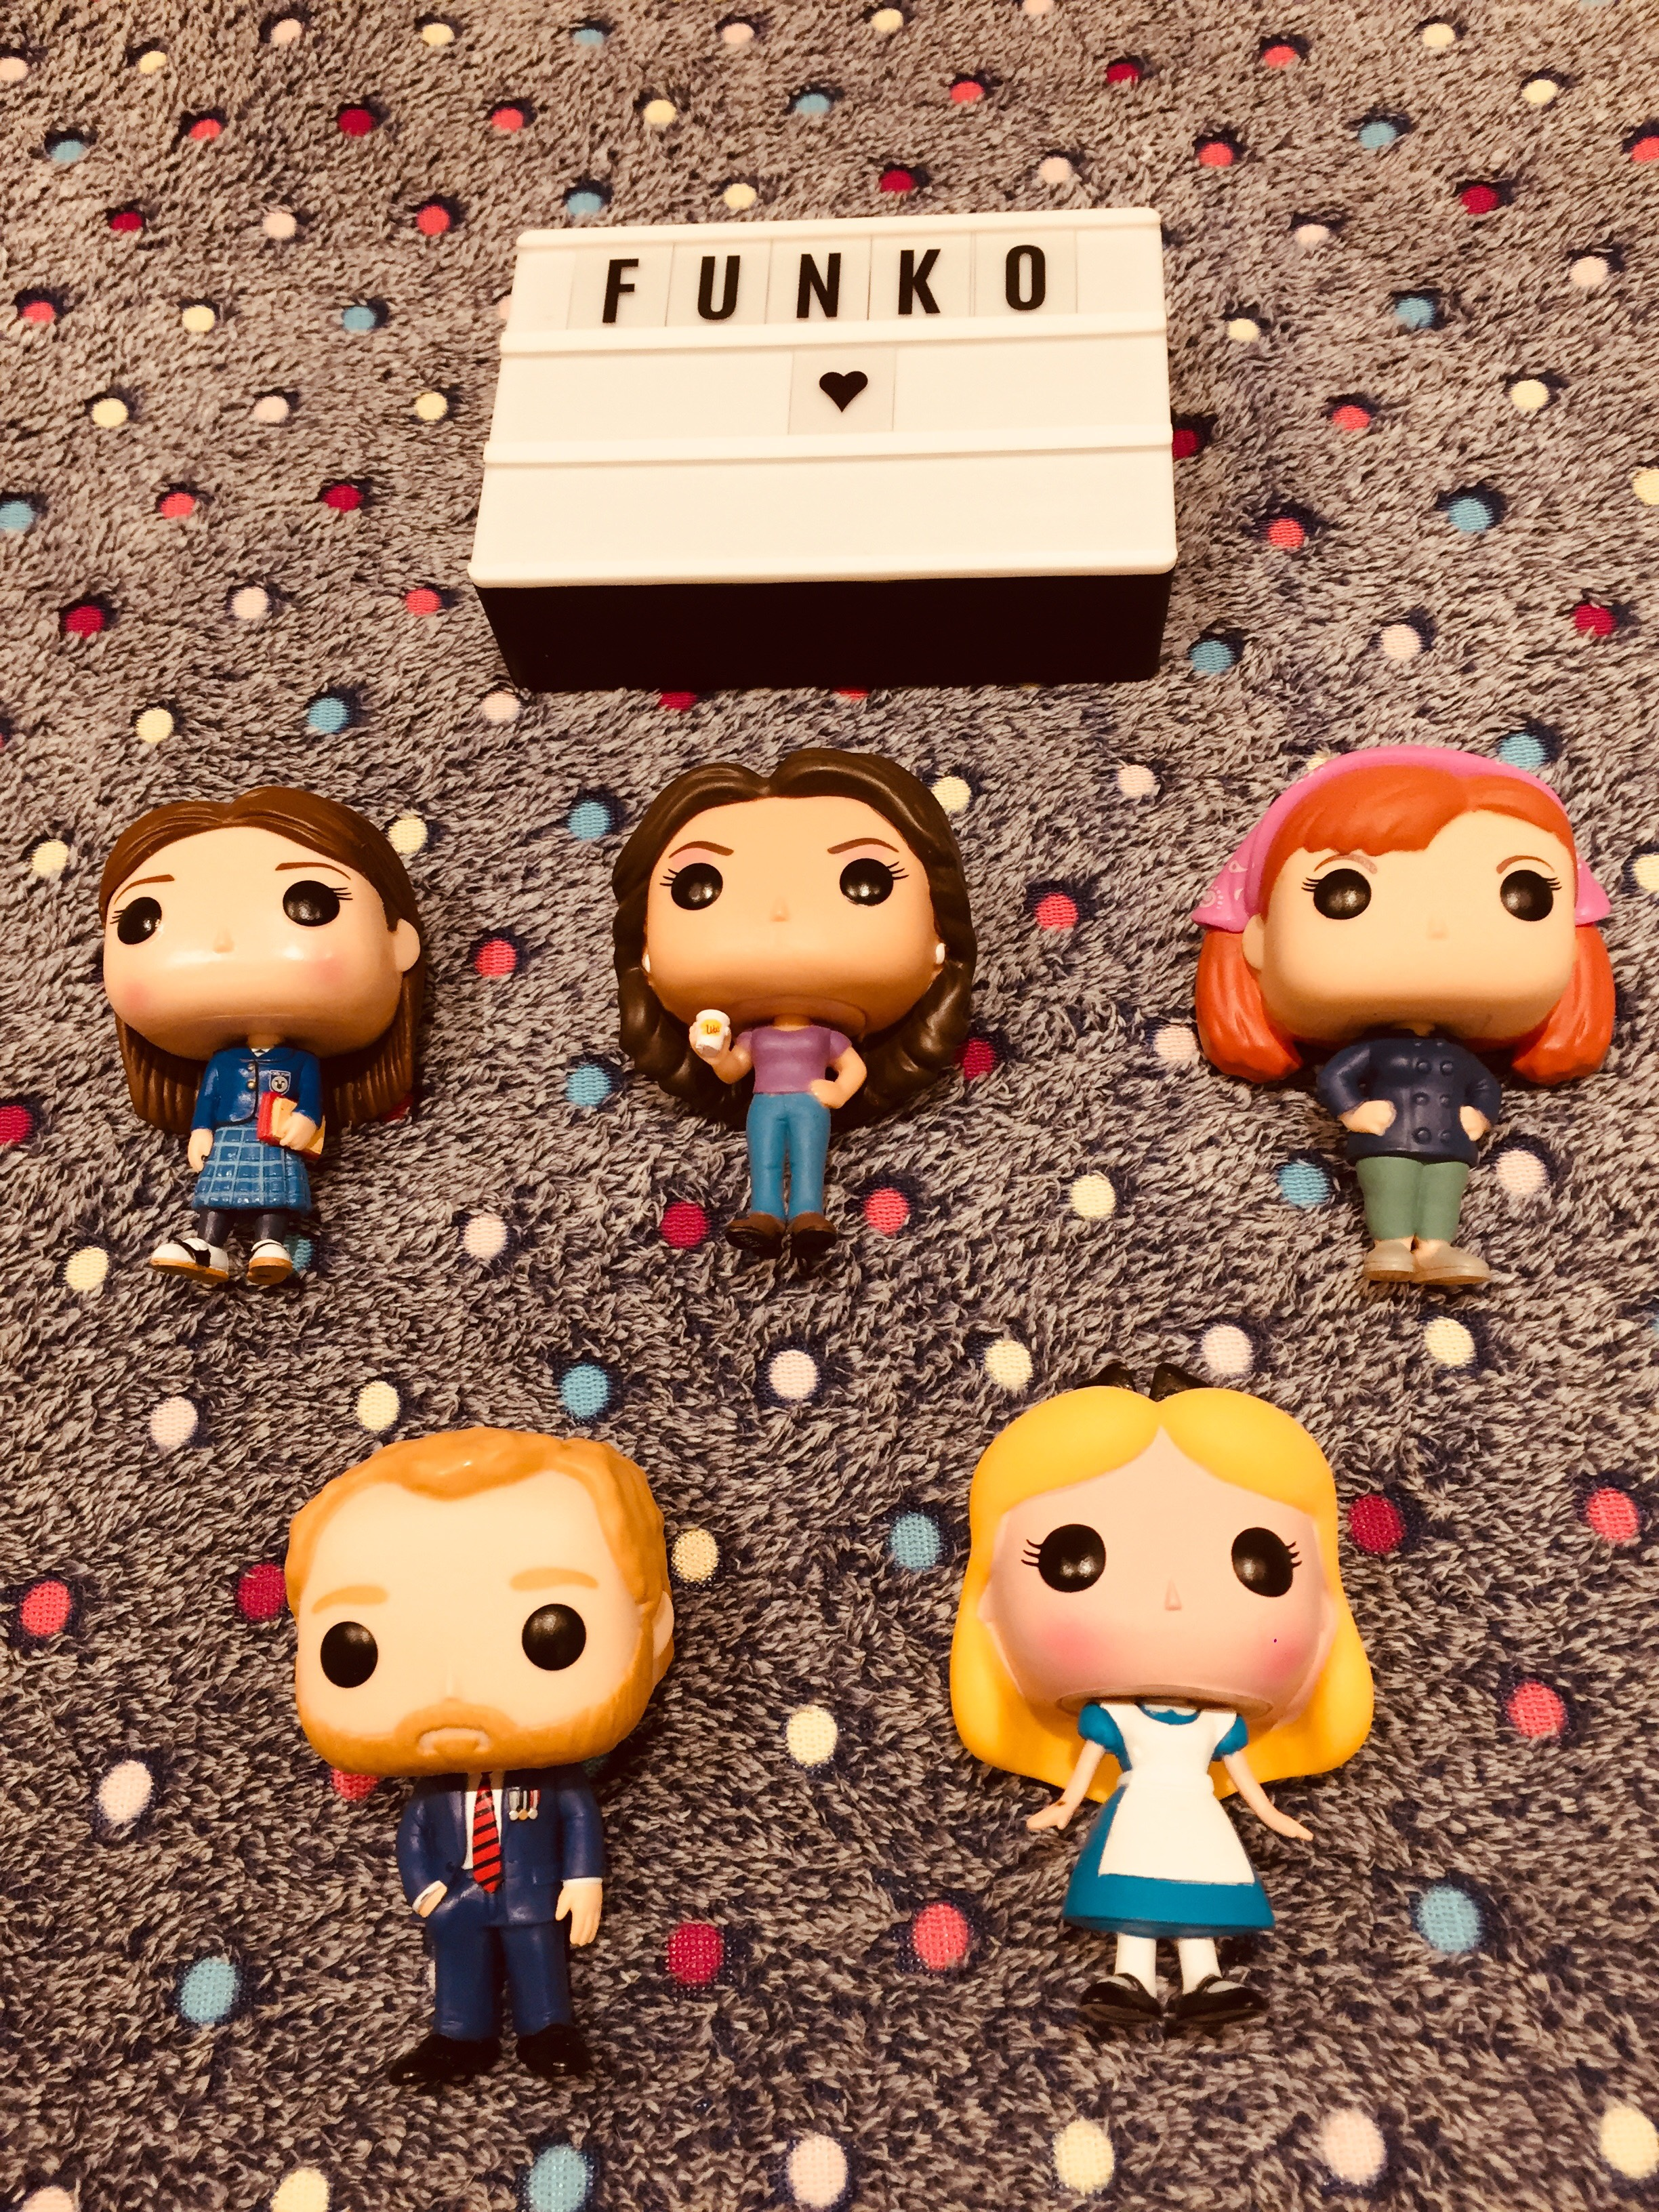 Post - Funko Pop - PJ